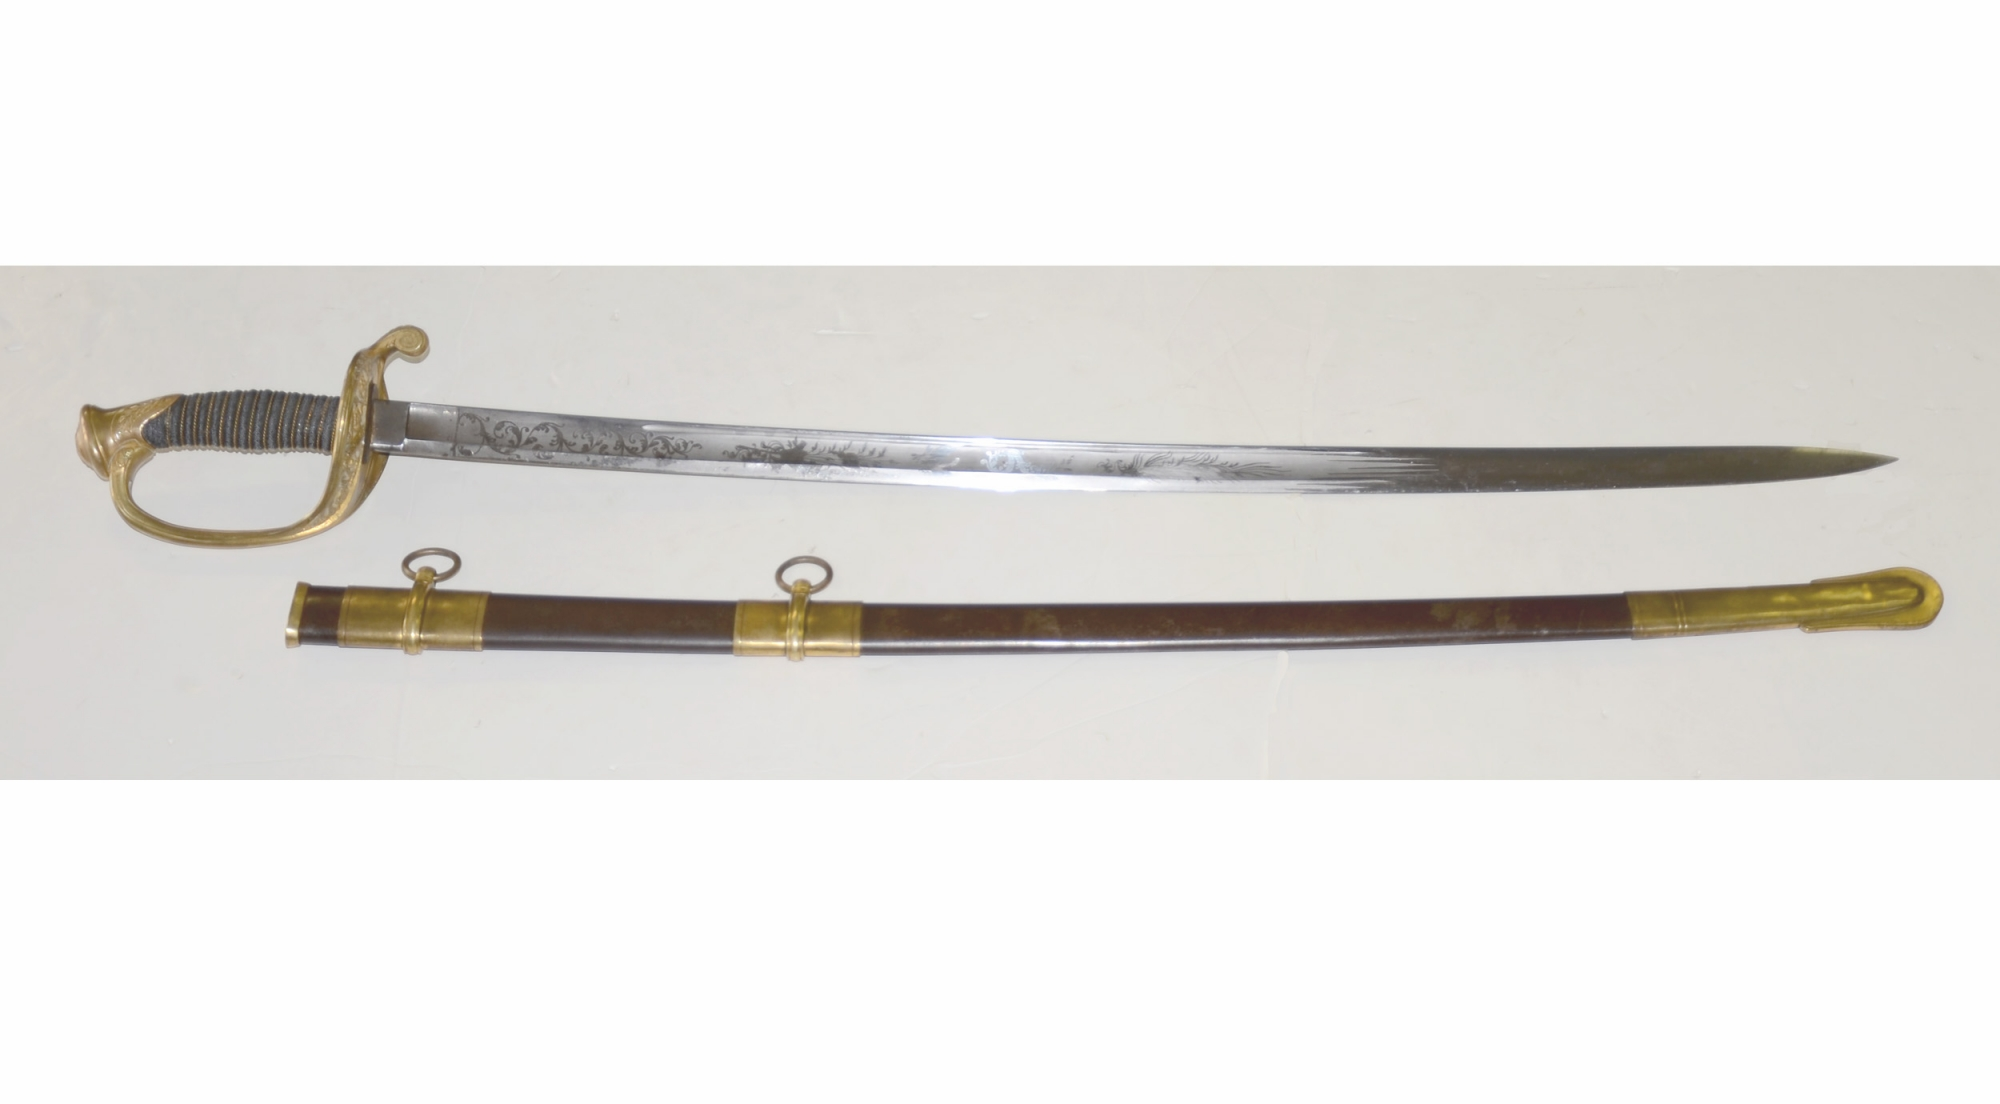 MODEL 1850 FOOT OFFICER'S SWORD BY AMES MANUFACTURING COMPANY, CHICOPEE, MA